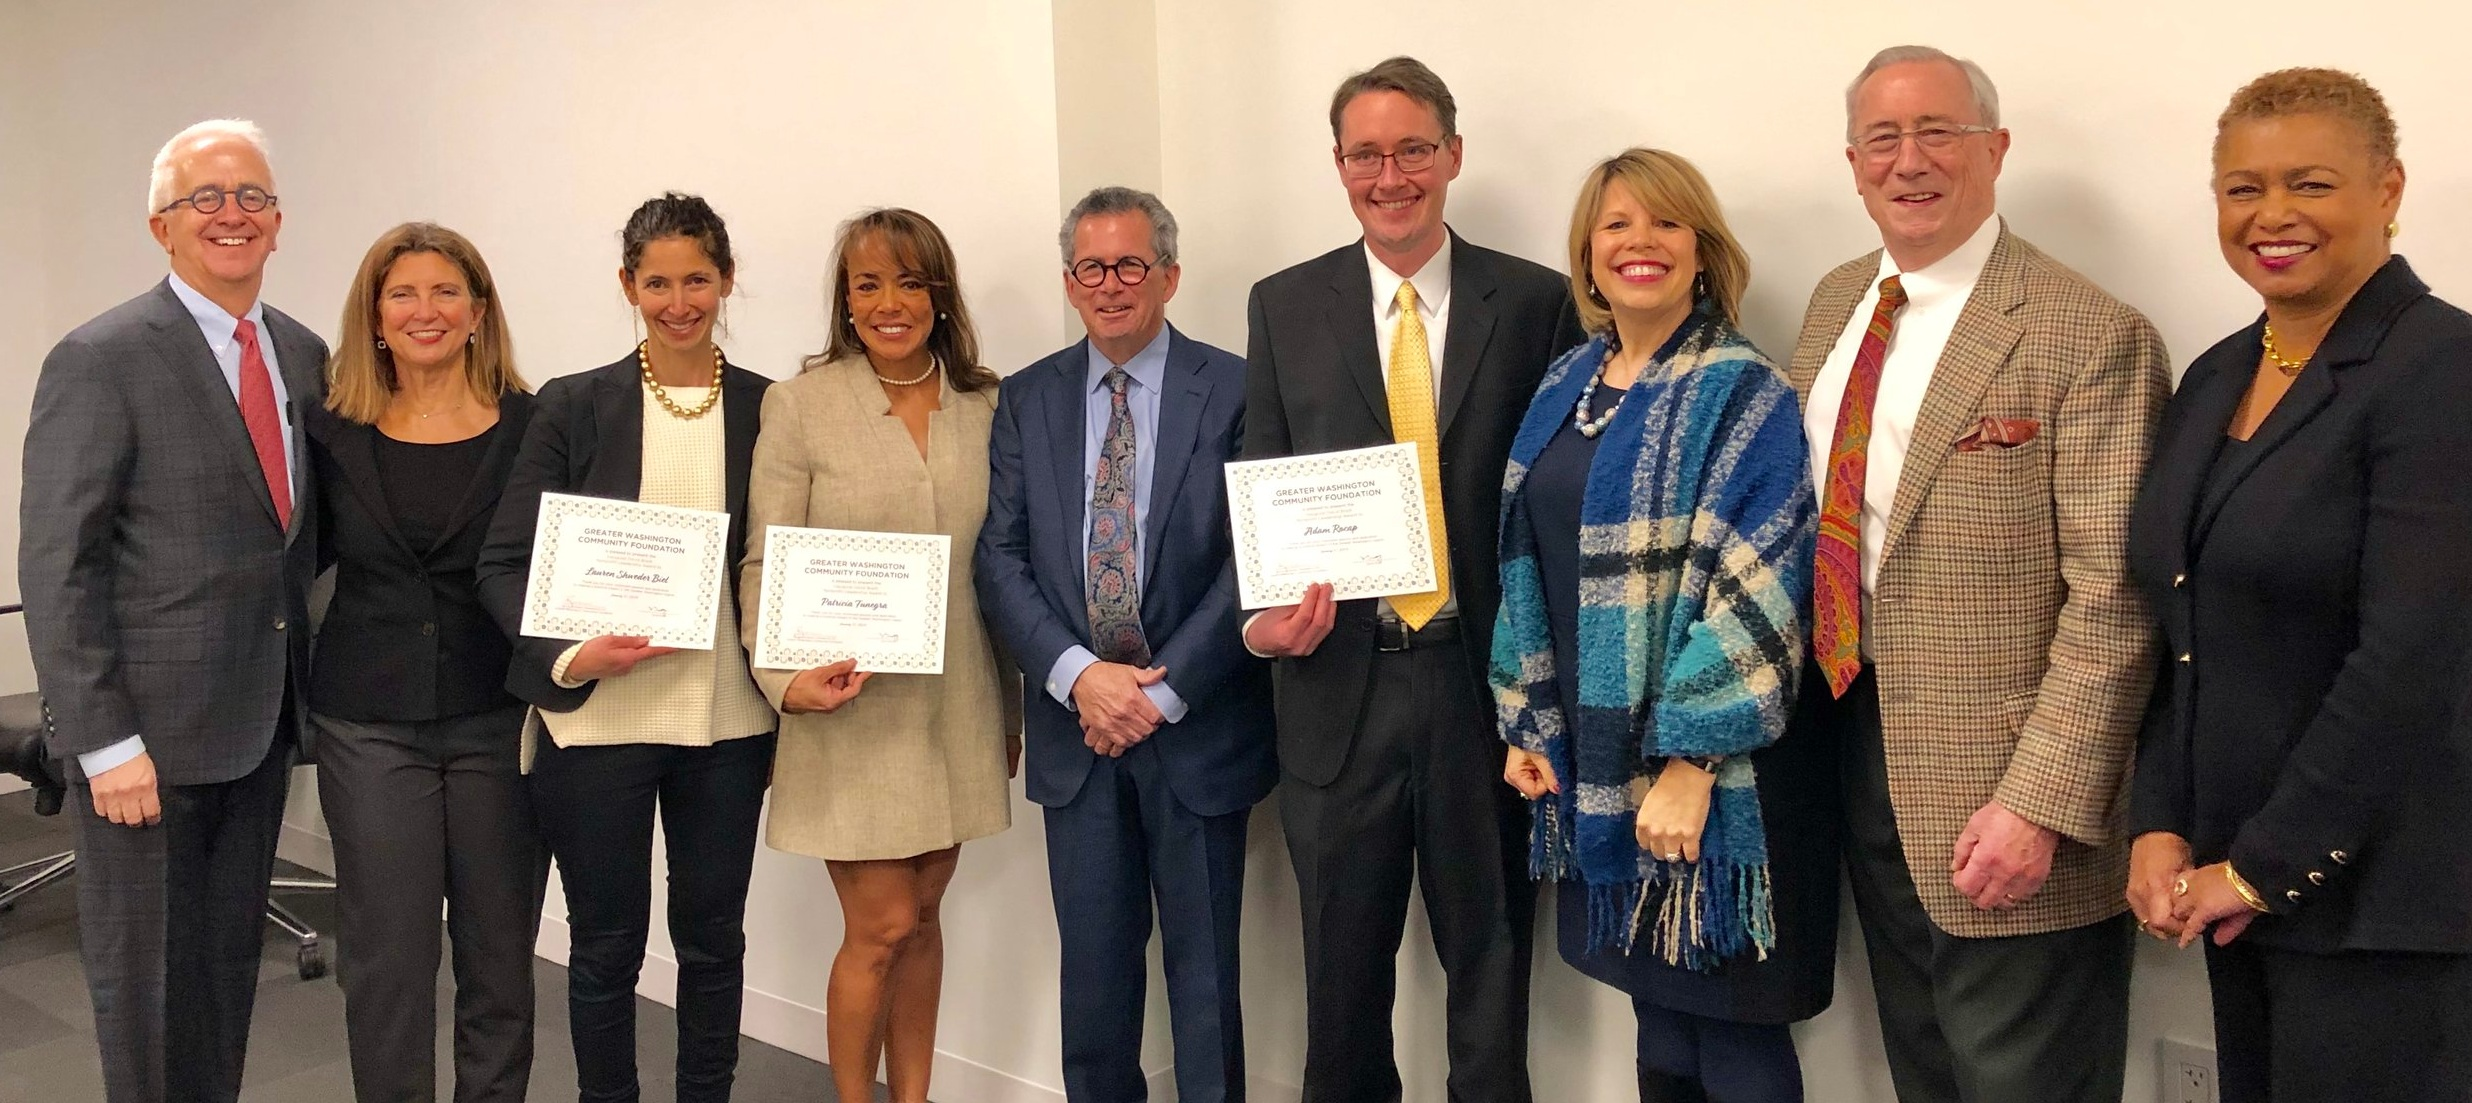 Our new awardees with members of the selection committee. From left to right: Alex Orfinger, Diane Tipton, Lauren Shweder Biel, Patricia Funegra, David Bradt, Adam Rocap, Lidia Soto-Harmon, Lyles Carr, and Tamara Copeland.